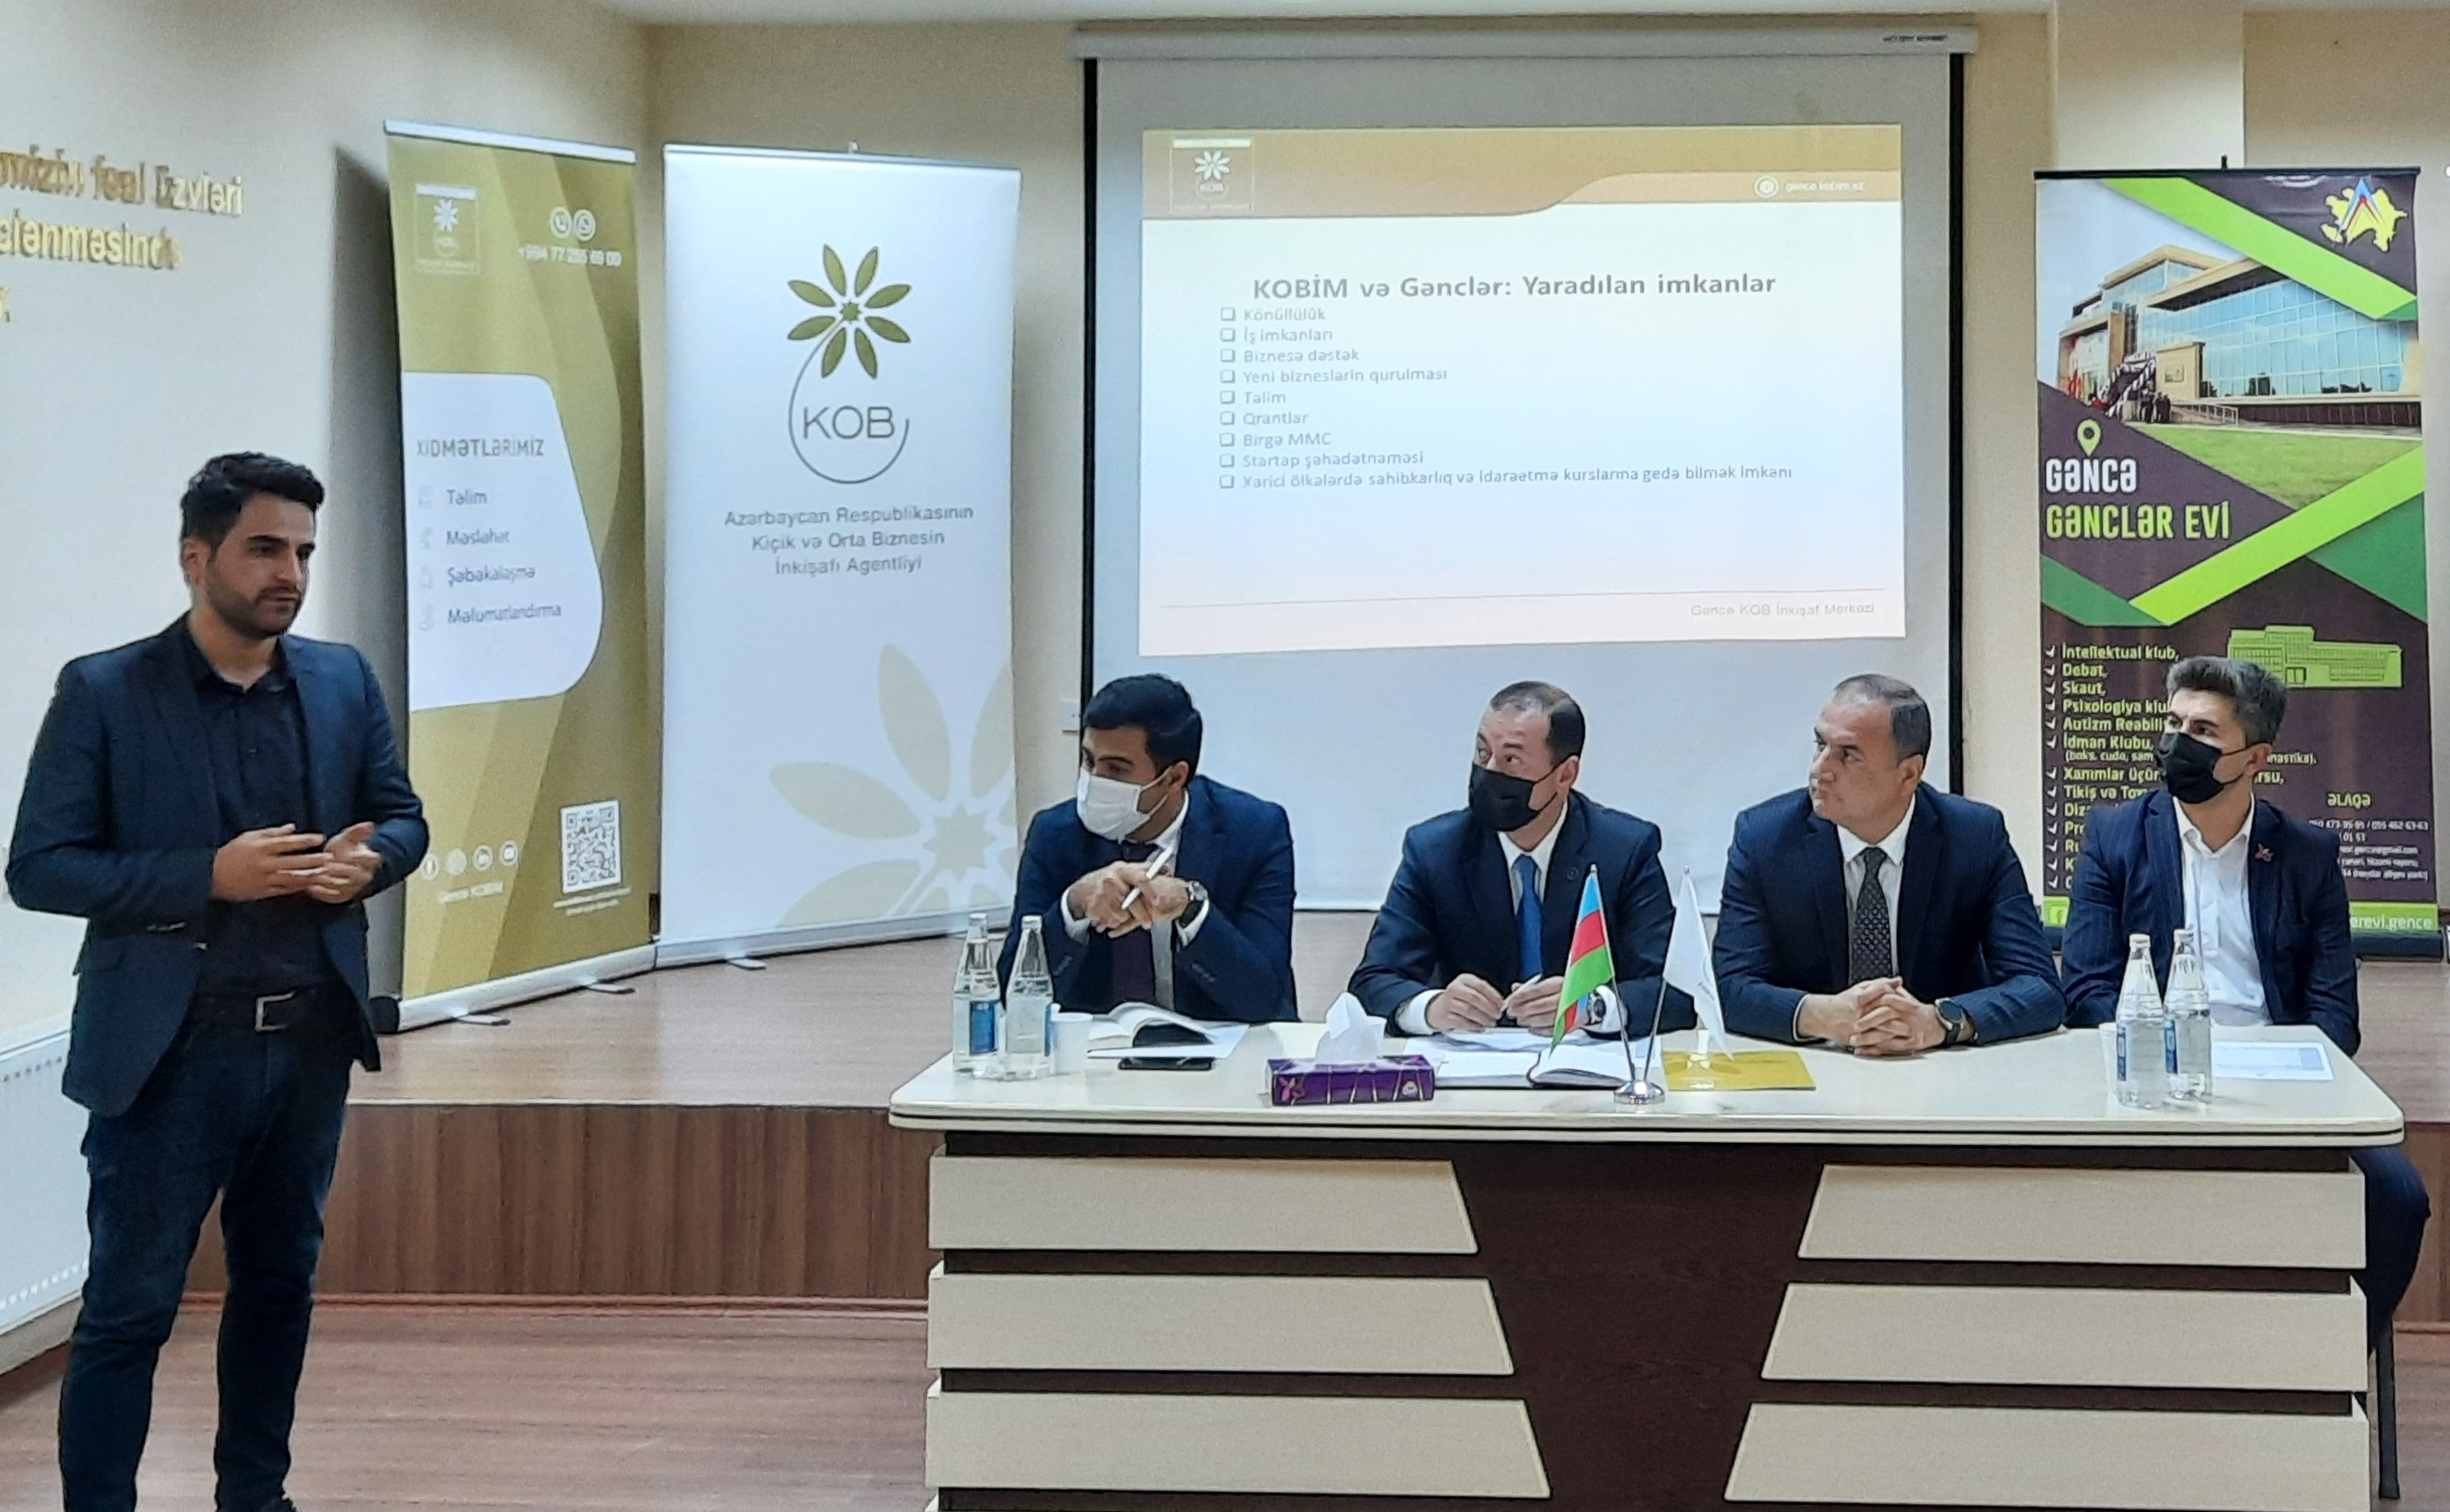 Promoting entrepreneurship among youth continues